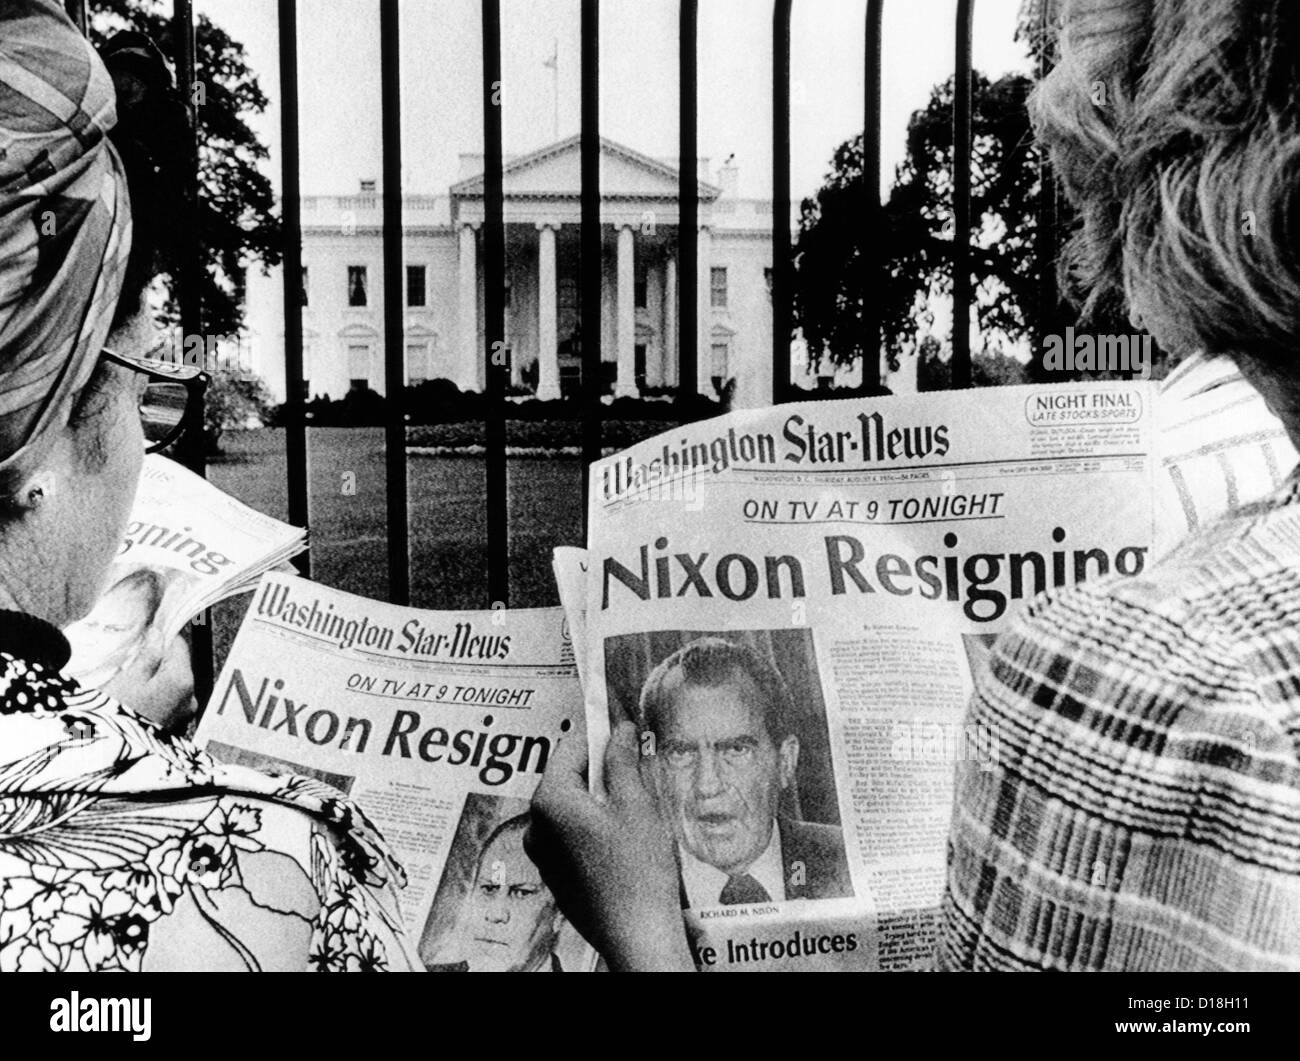 Tourists in front of the White House read headlines, 'Nixon Resigning.' Aug. 8, 1974. (CSU_ALPHA_642) CSU - Stock Image